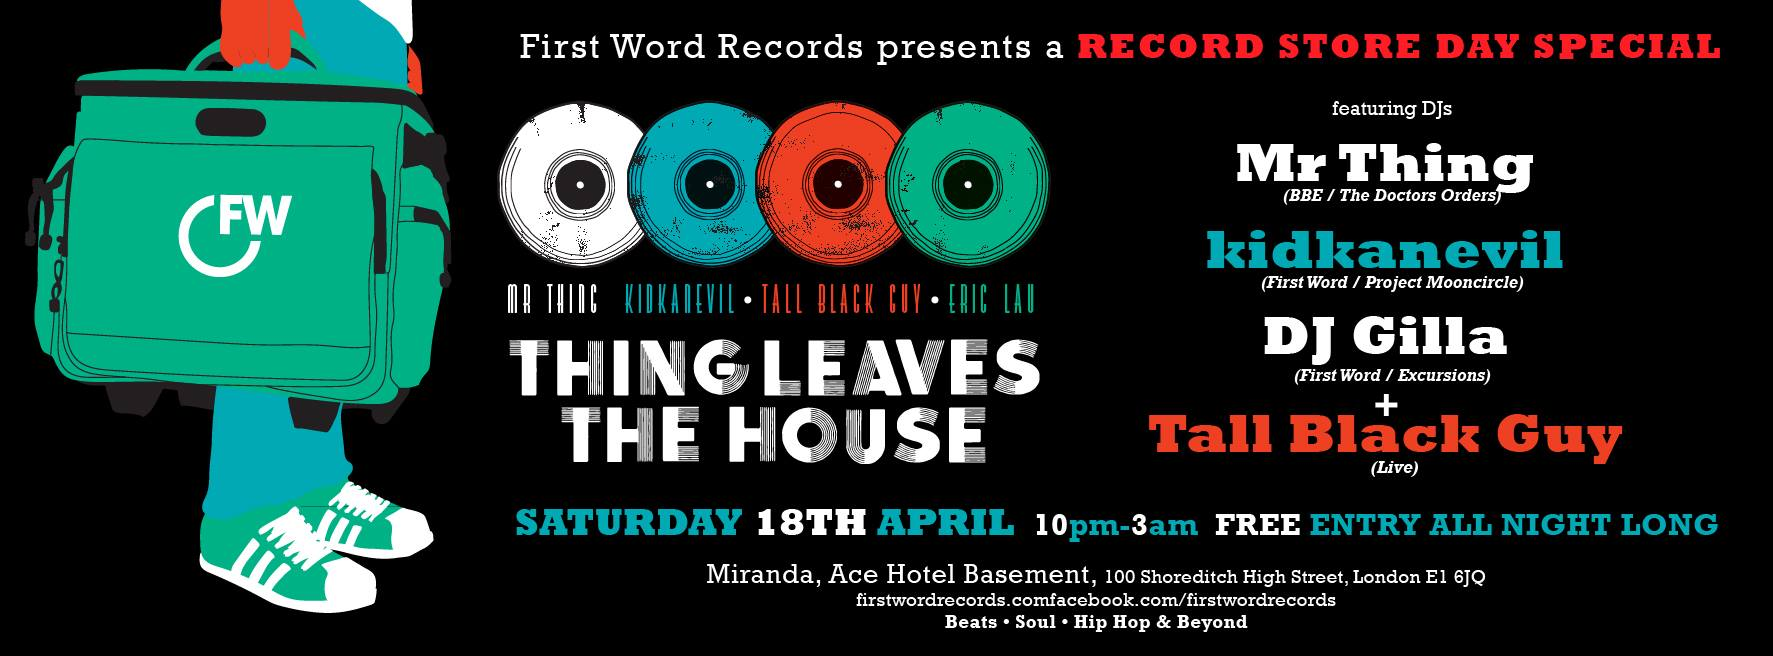 Things Leave the House, RSD 2015 special promo, First Word (1773x656)